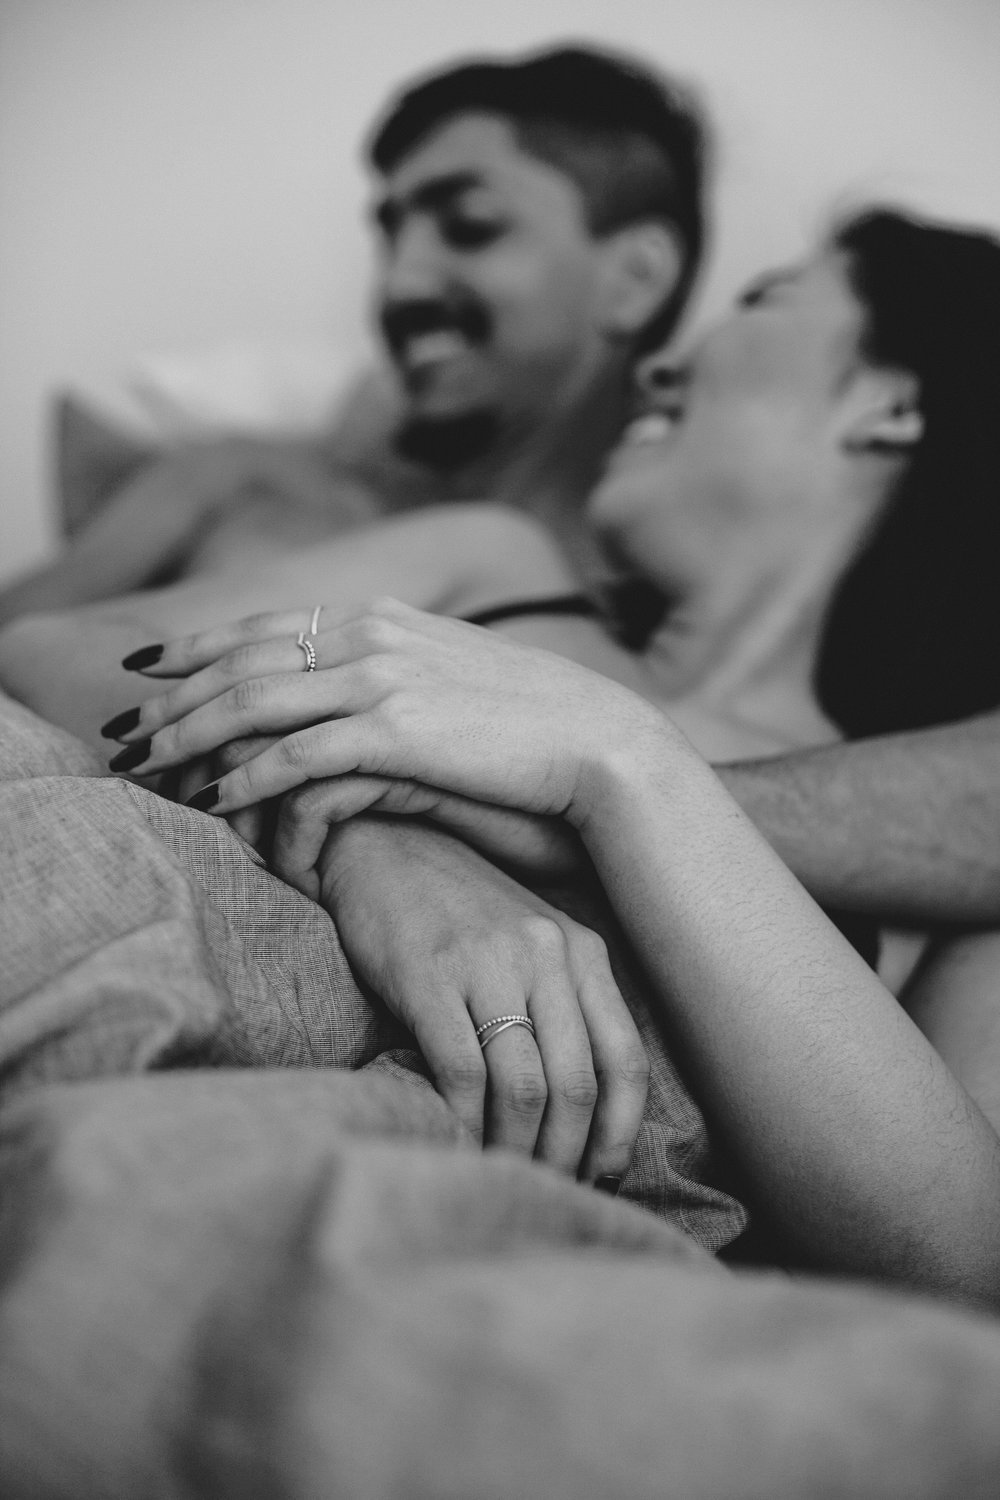 RosewoodWeddingPhotos-TorontoEngagementPhotographer-AtHome-SnuggleSession-Engagement-Engaged-AsianCouple